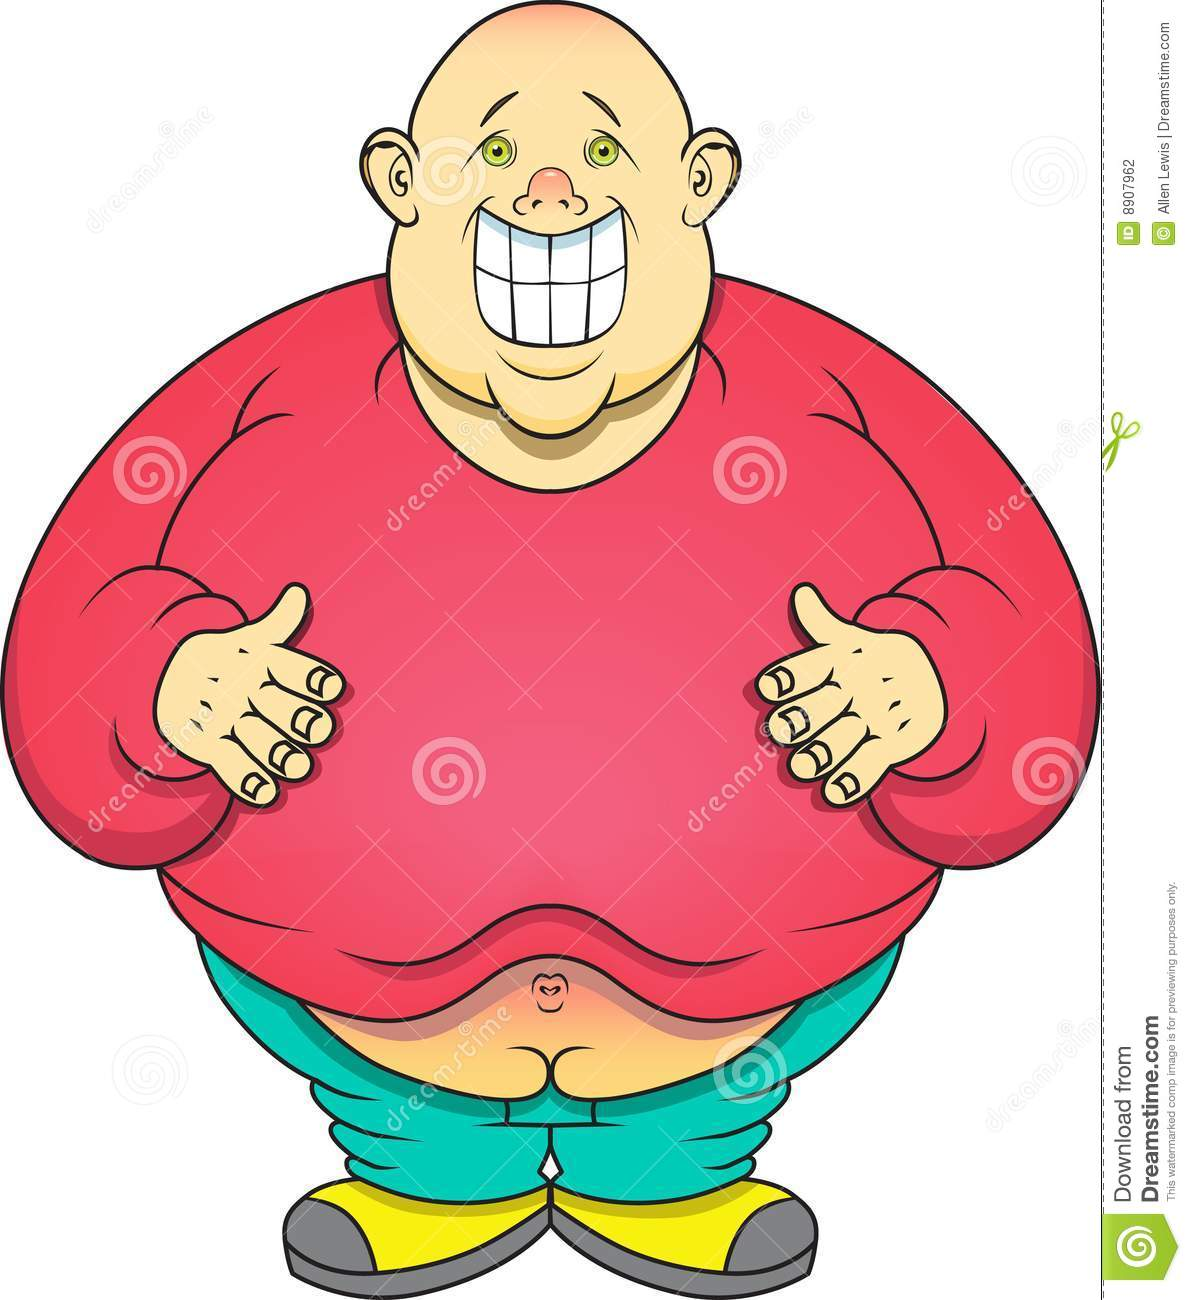 Fat Boy Stock Photography Image 8907962 #iLhF8I - Clipart Kid